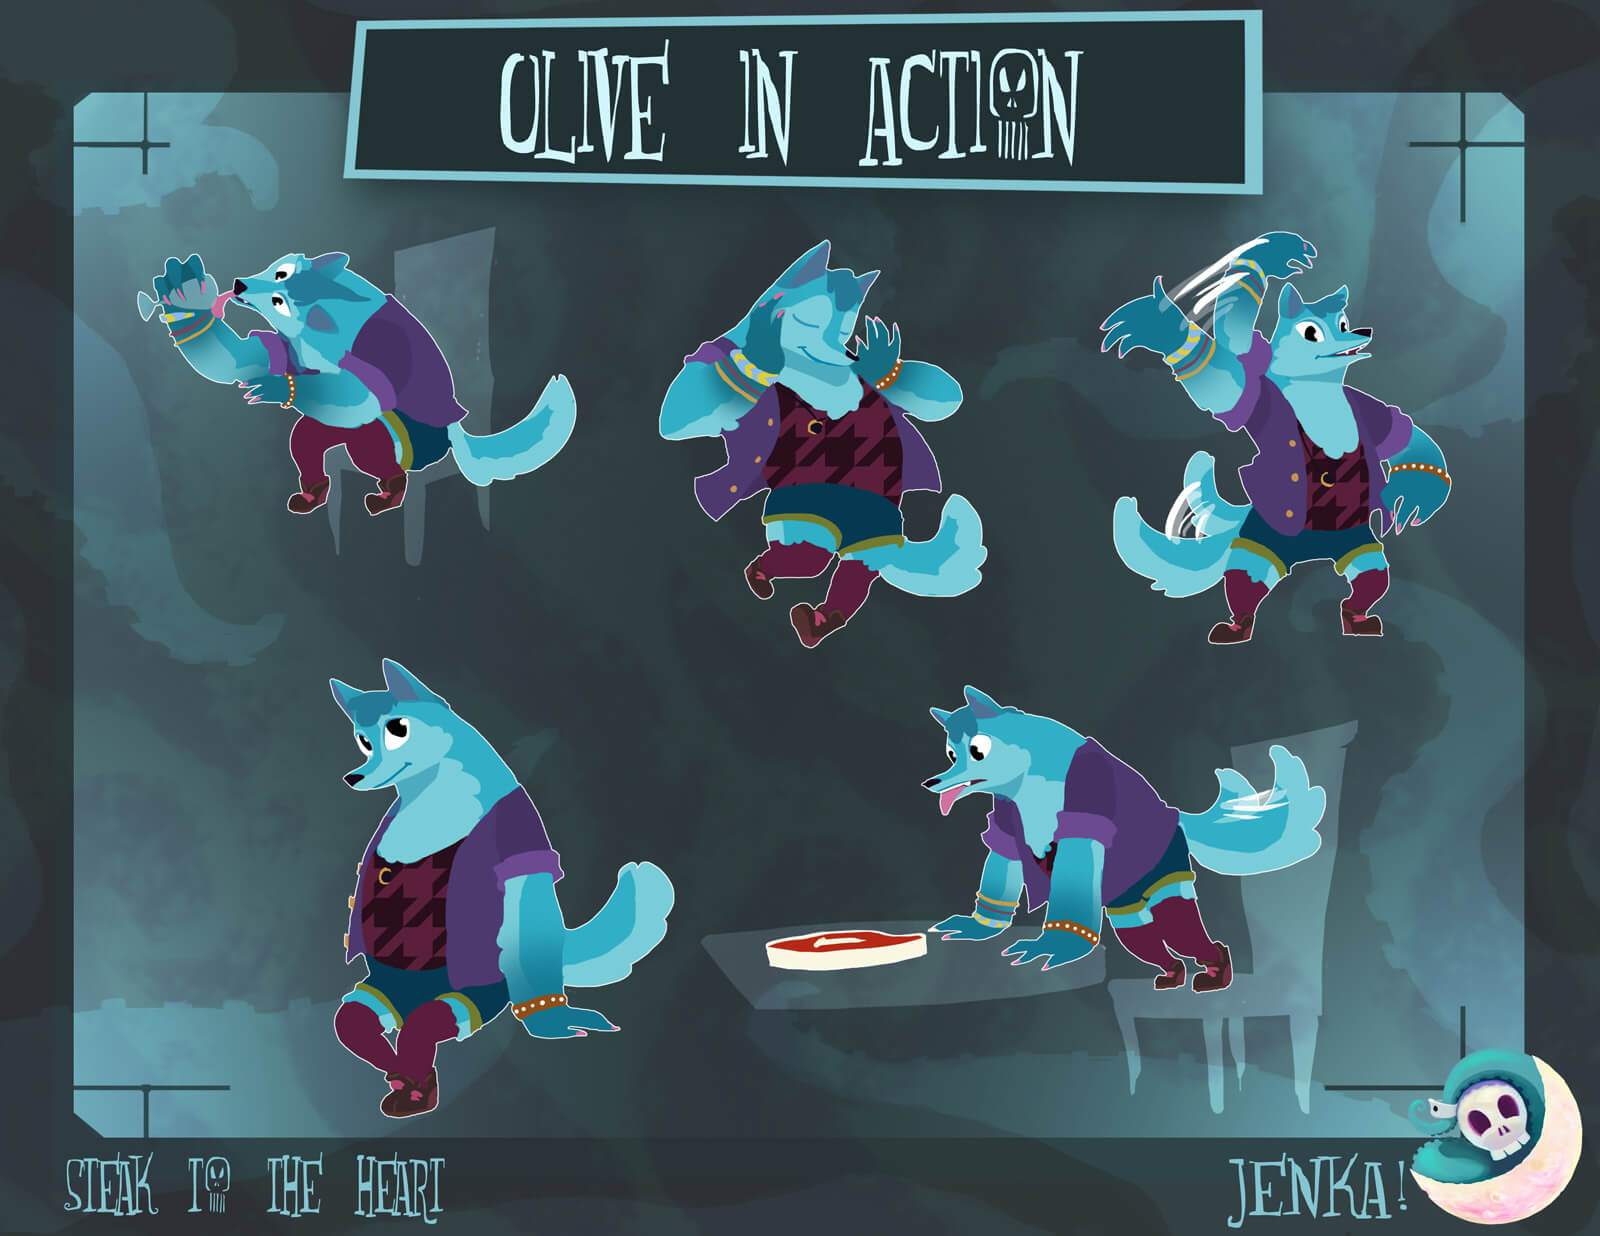 Designs of a blue werewolf in various action poses, such as waving, sitting, licking a cup, and panting